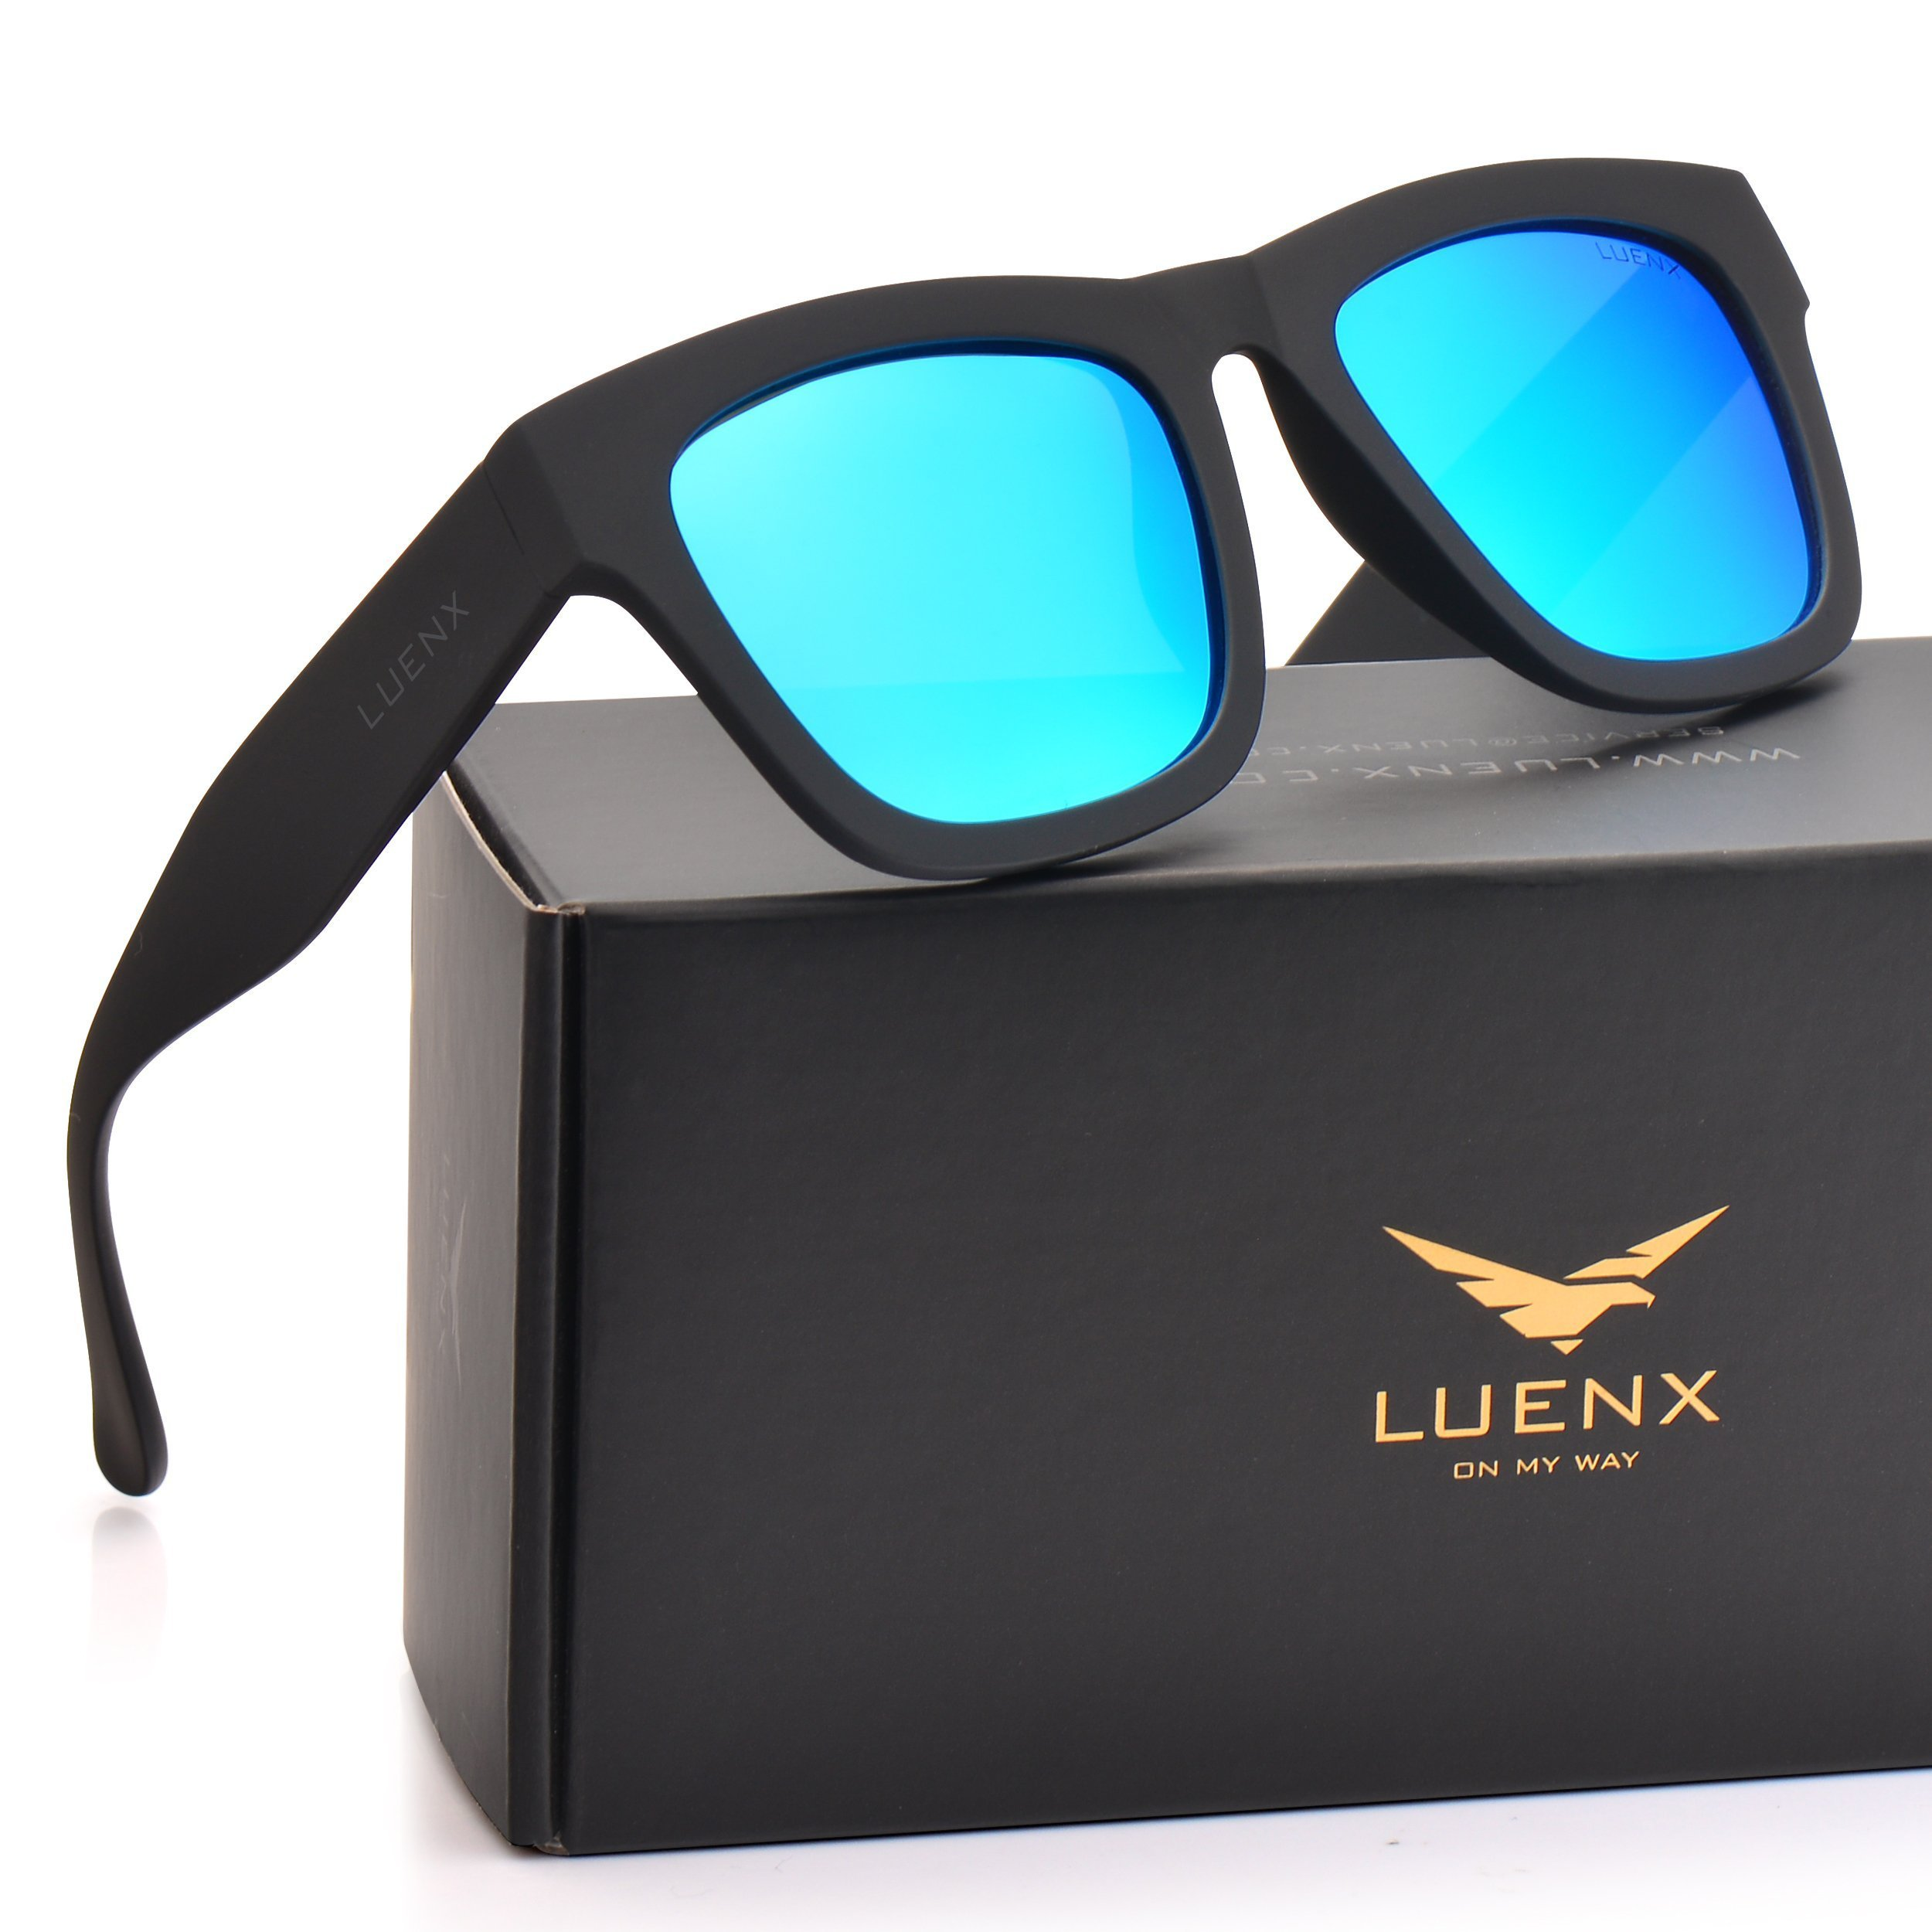 Mens Wayfarer Polarized Sunglasses UV 400 Protection Mirror Blue Lens Black Frame 58MM,by LUENX with Case by LUENX